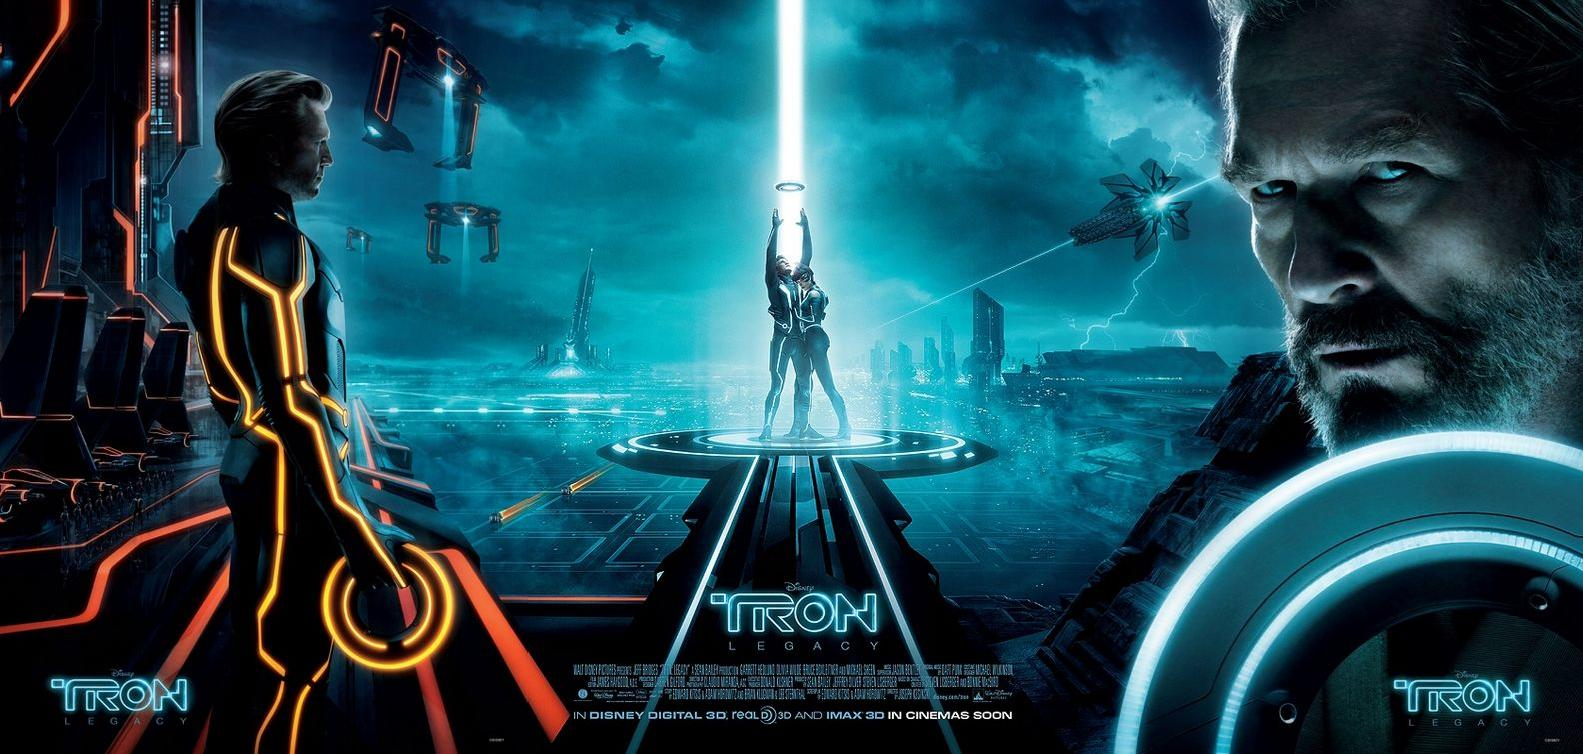 2010 Movie Posters: The Blot Says...: TRON: Legacy Movie Poster Triptych